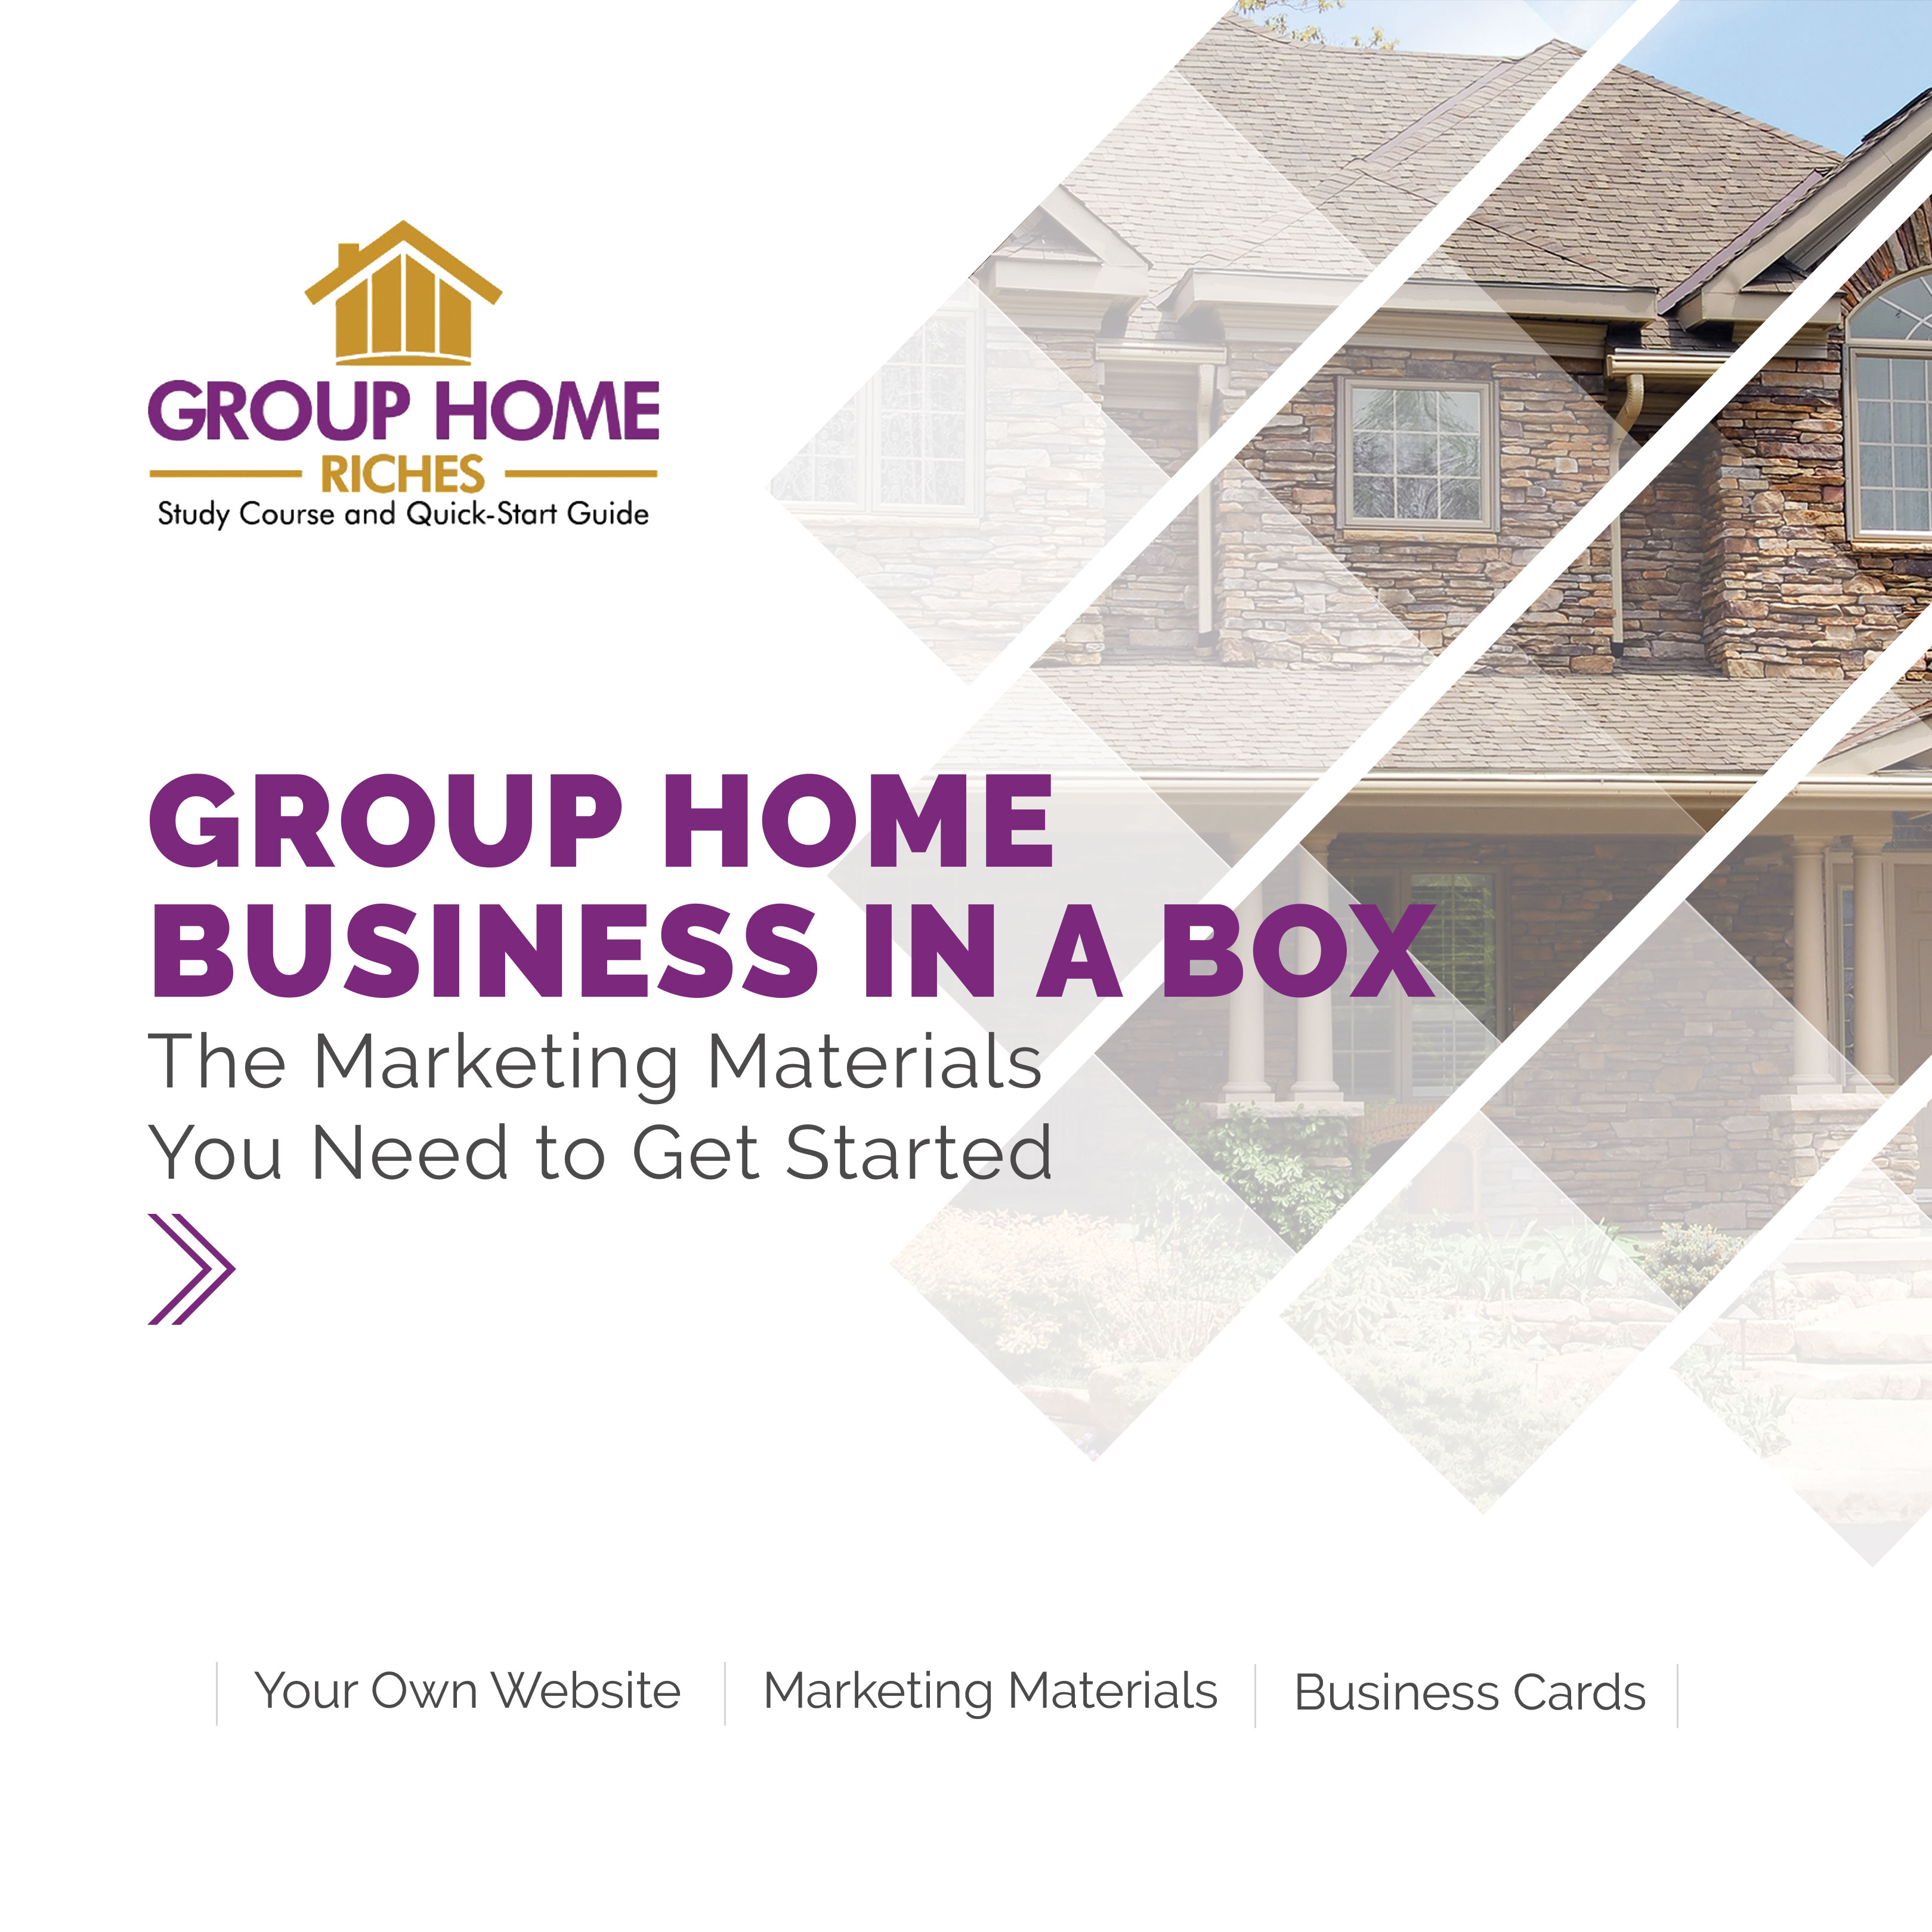 Business in a Box - Group HomeRiches